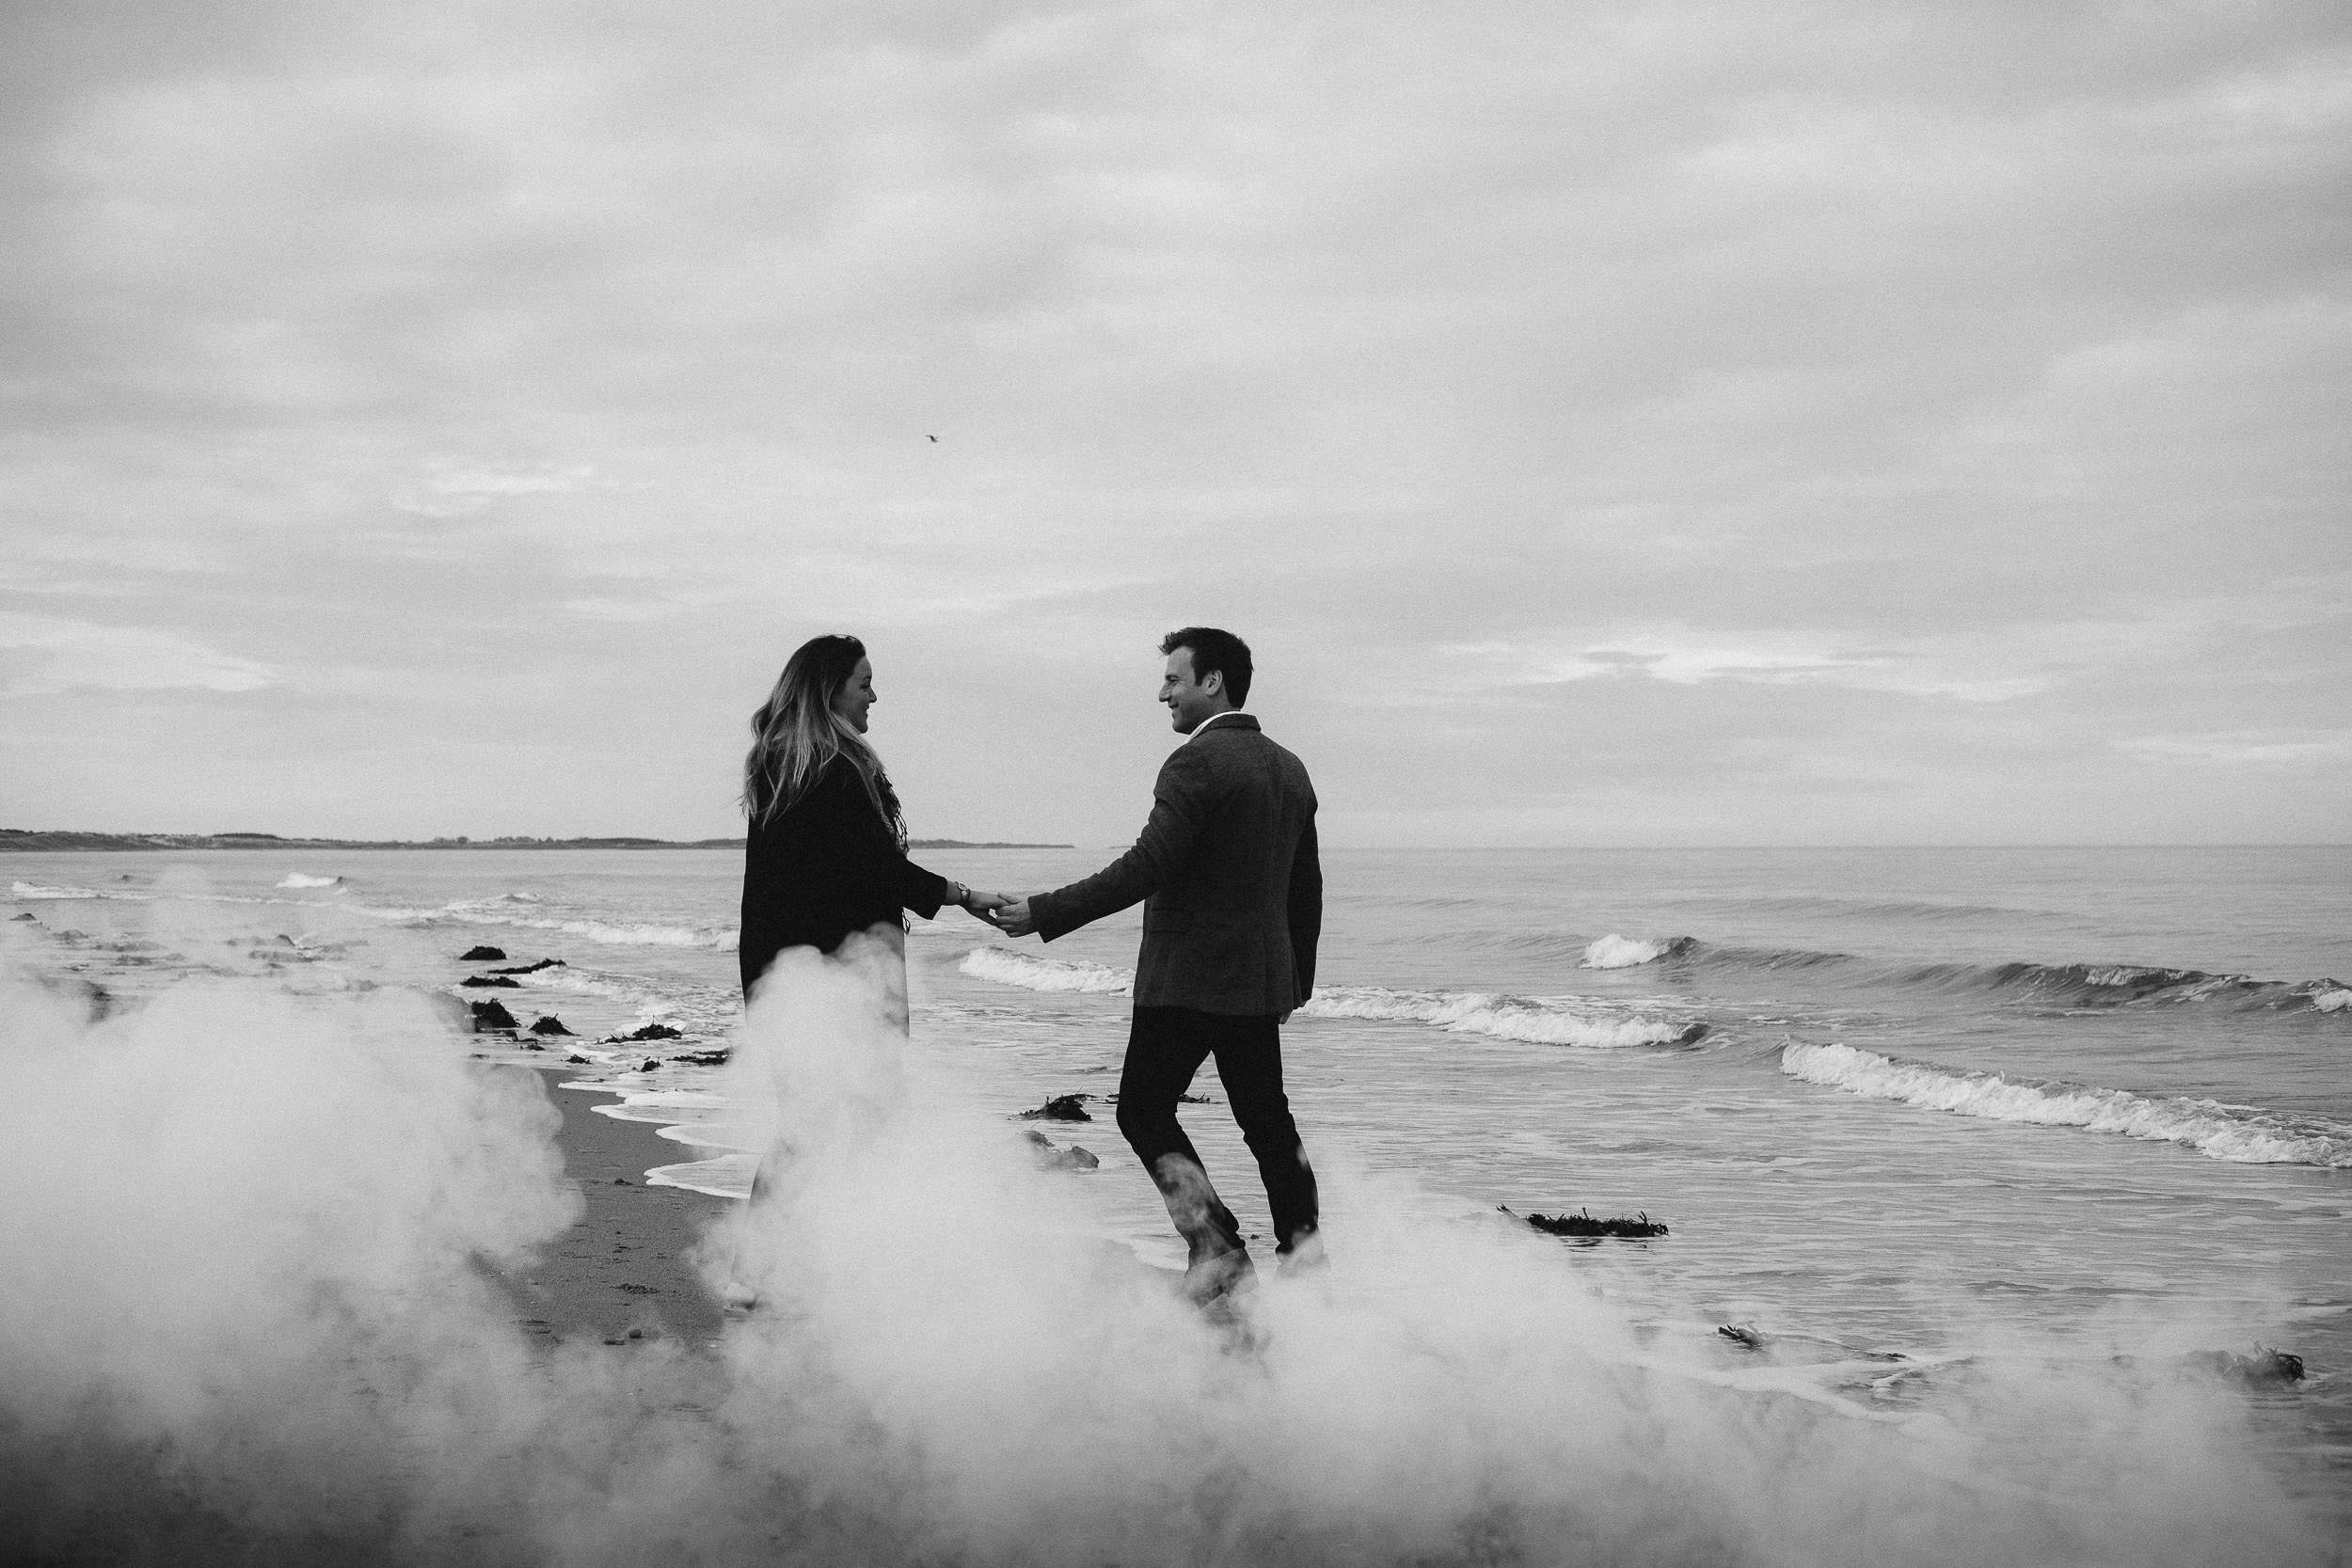 A black and white photo of an engaged couple holding hands on a beach surrounded by smoke